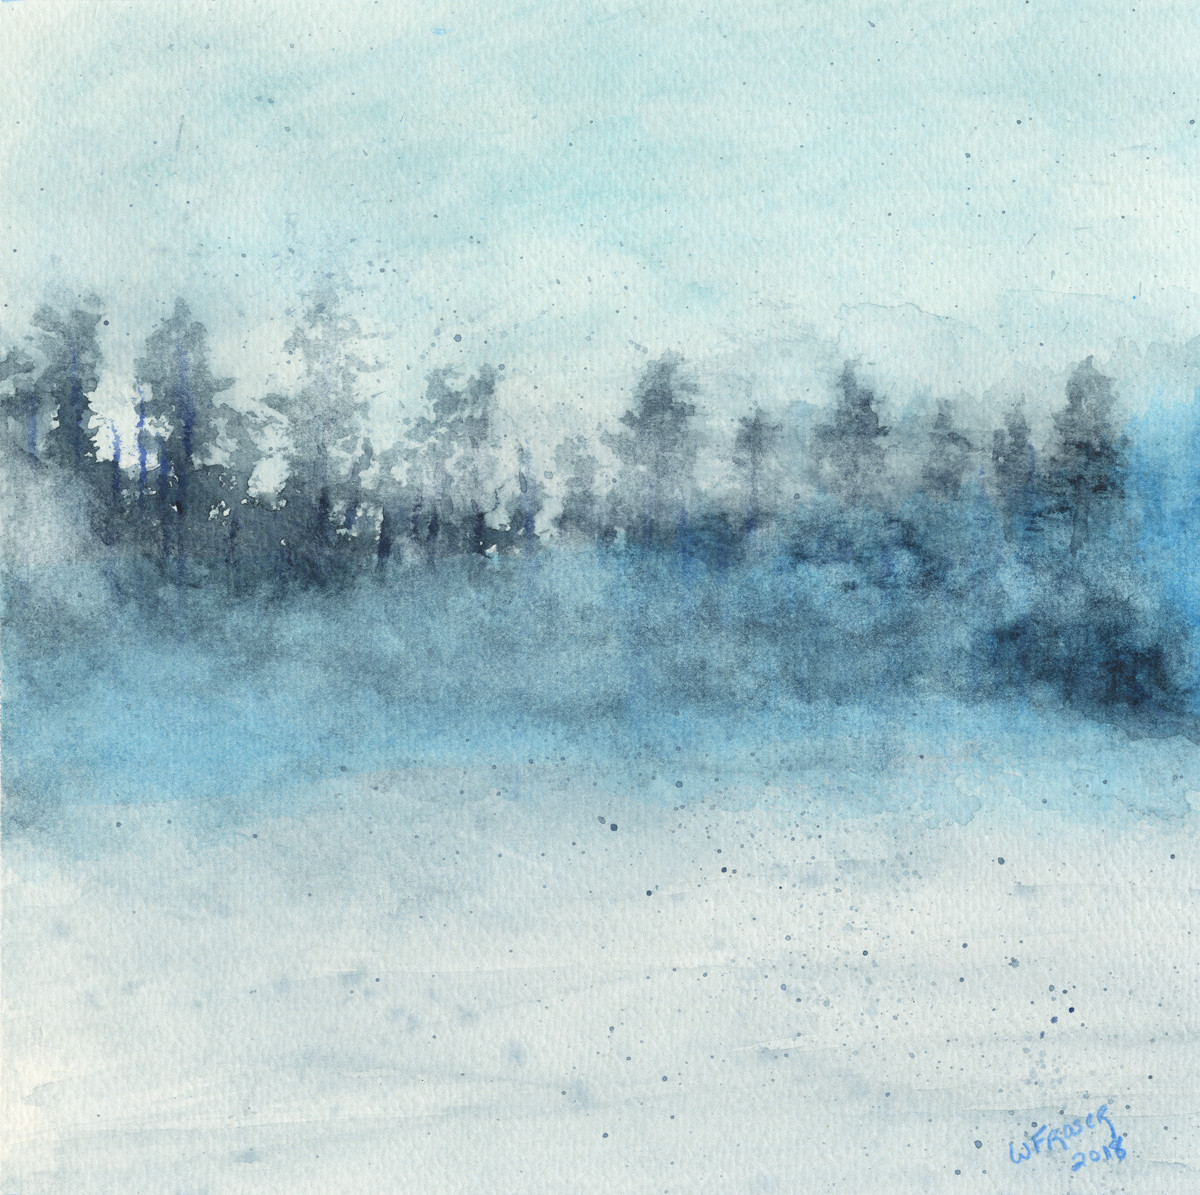 Mist in the Forest - Sold